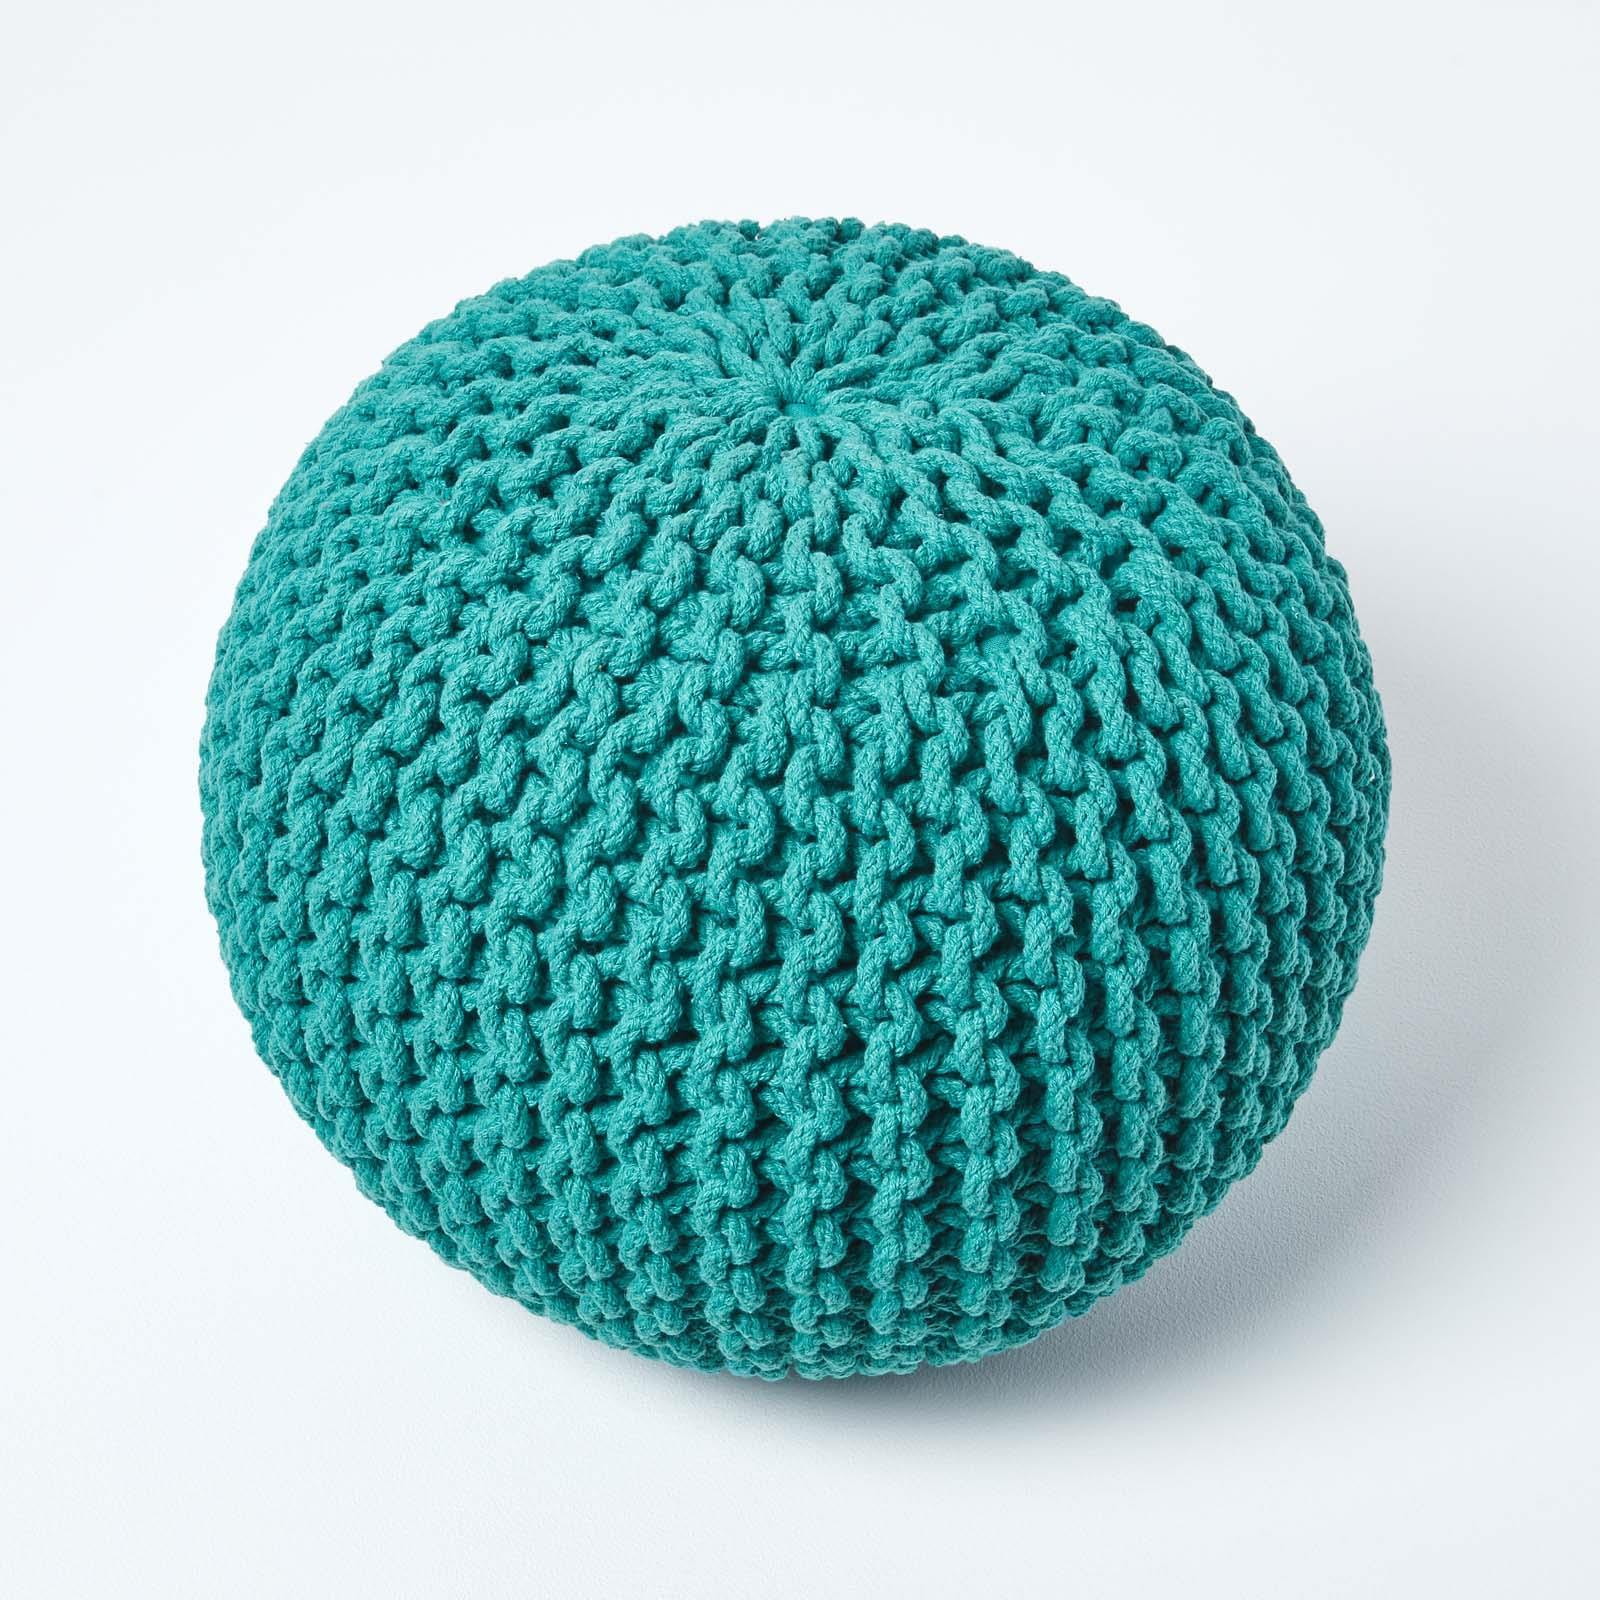 Hand-Knitted-100-Cotton-Pouffes-Round-Sphere-Or-Cube-Square-Chunky-Footstools thumbnail 195